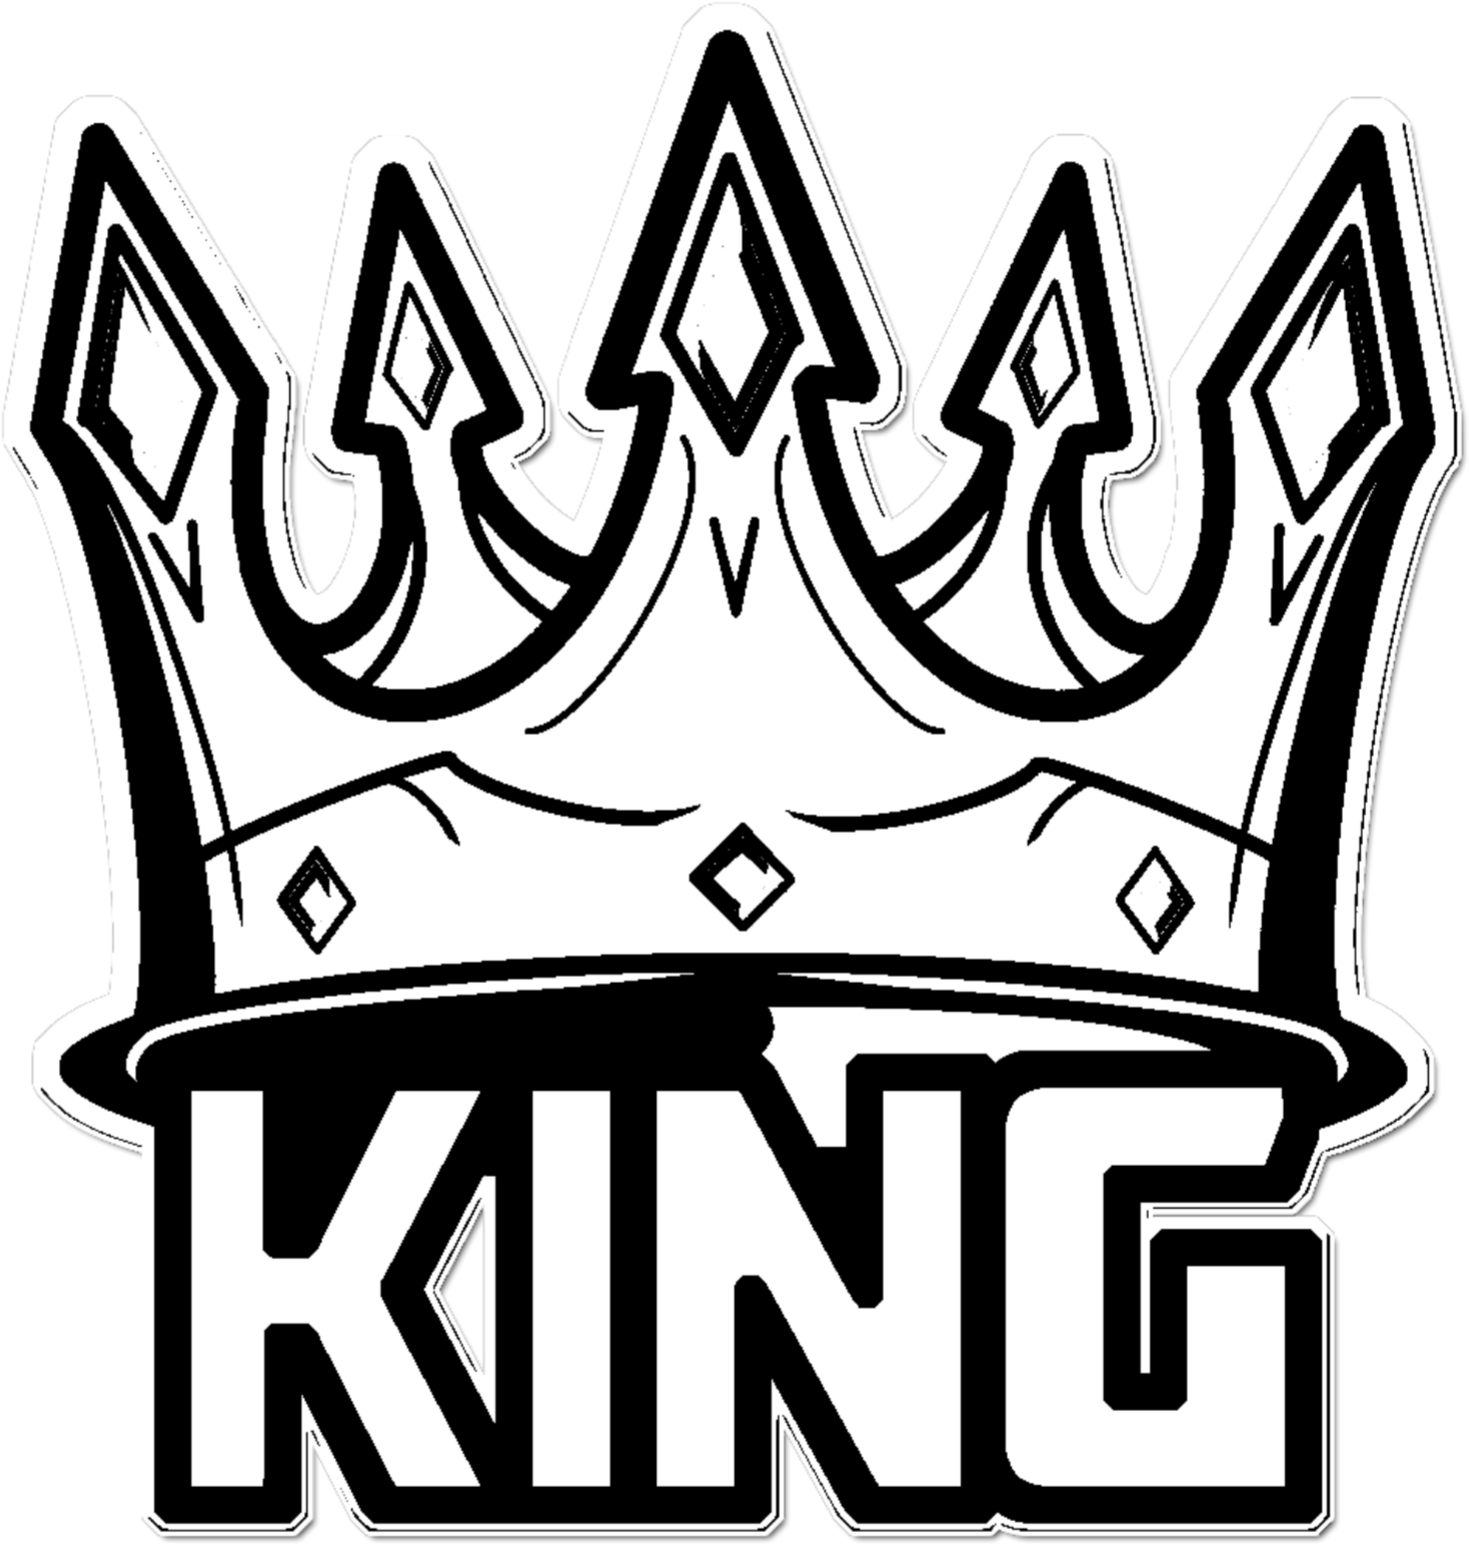 Transparent King Crown Clipart Black And White - King ...